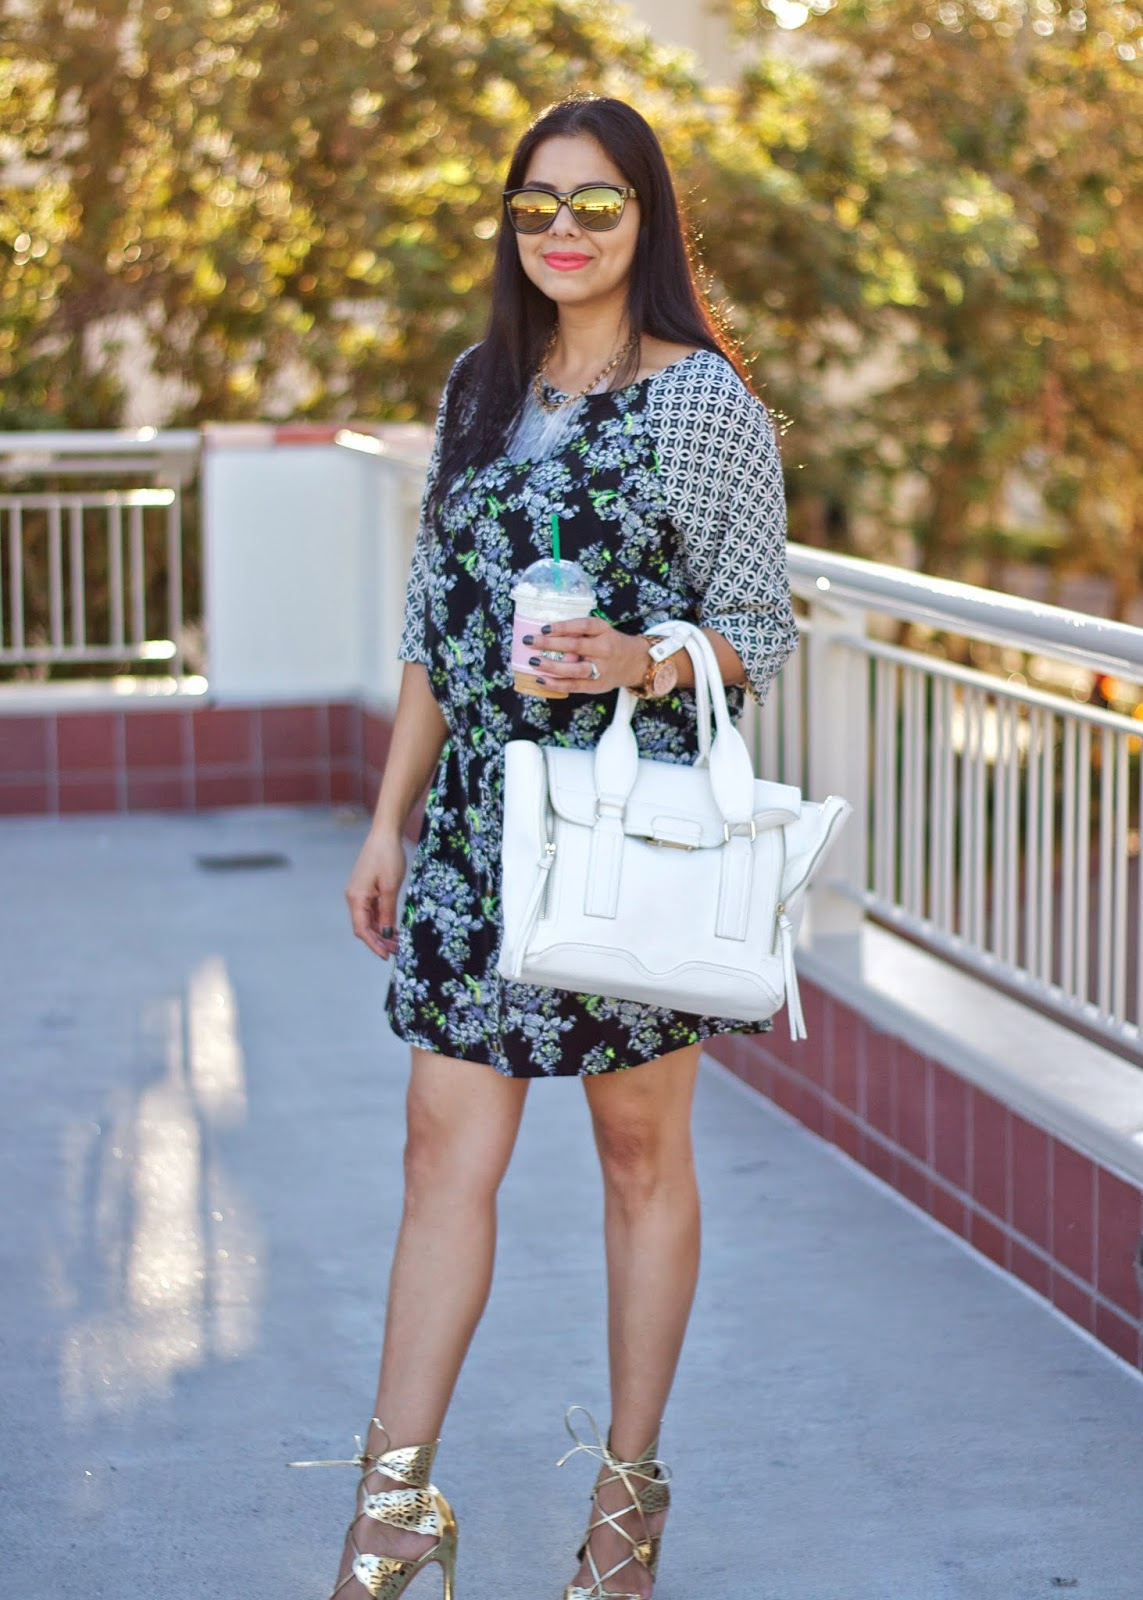 how to wear a lightweight dress, 3.1 phillip lim pashli, how to wear a white satchel, how to wear phillip lim purse, gold shoedazzle sandals, gold sandal heels, isaac mizrahi sunglasses